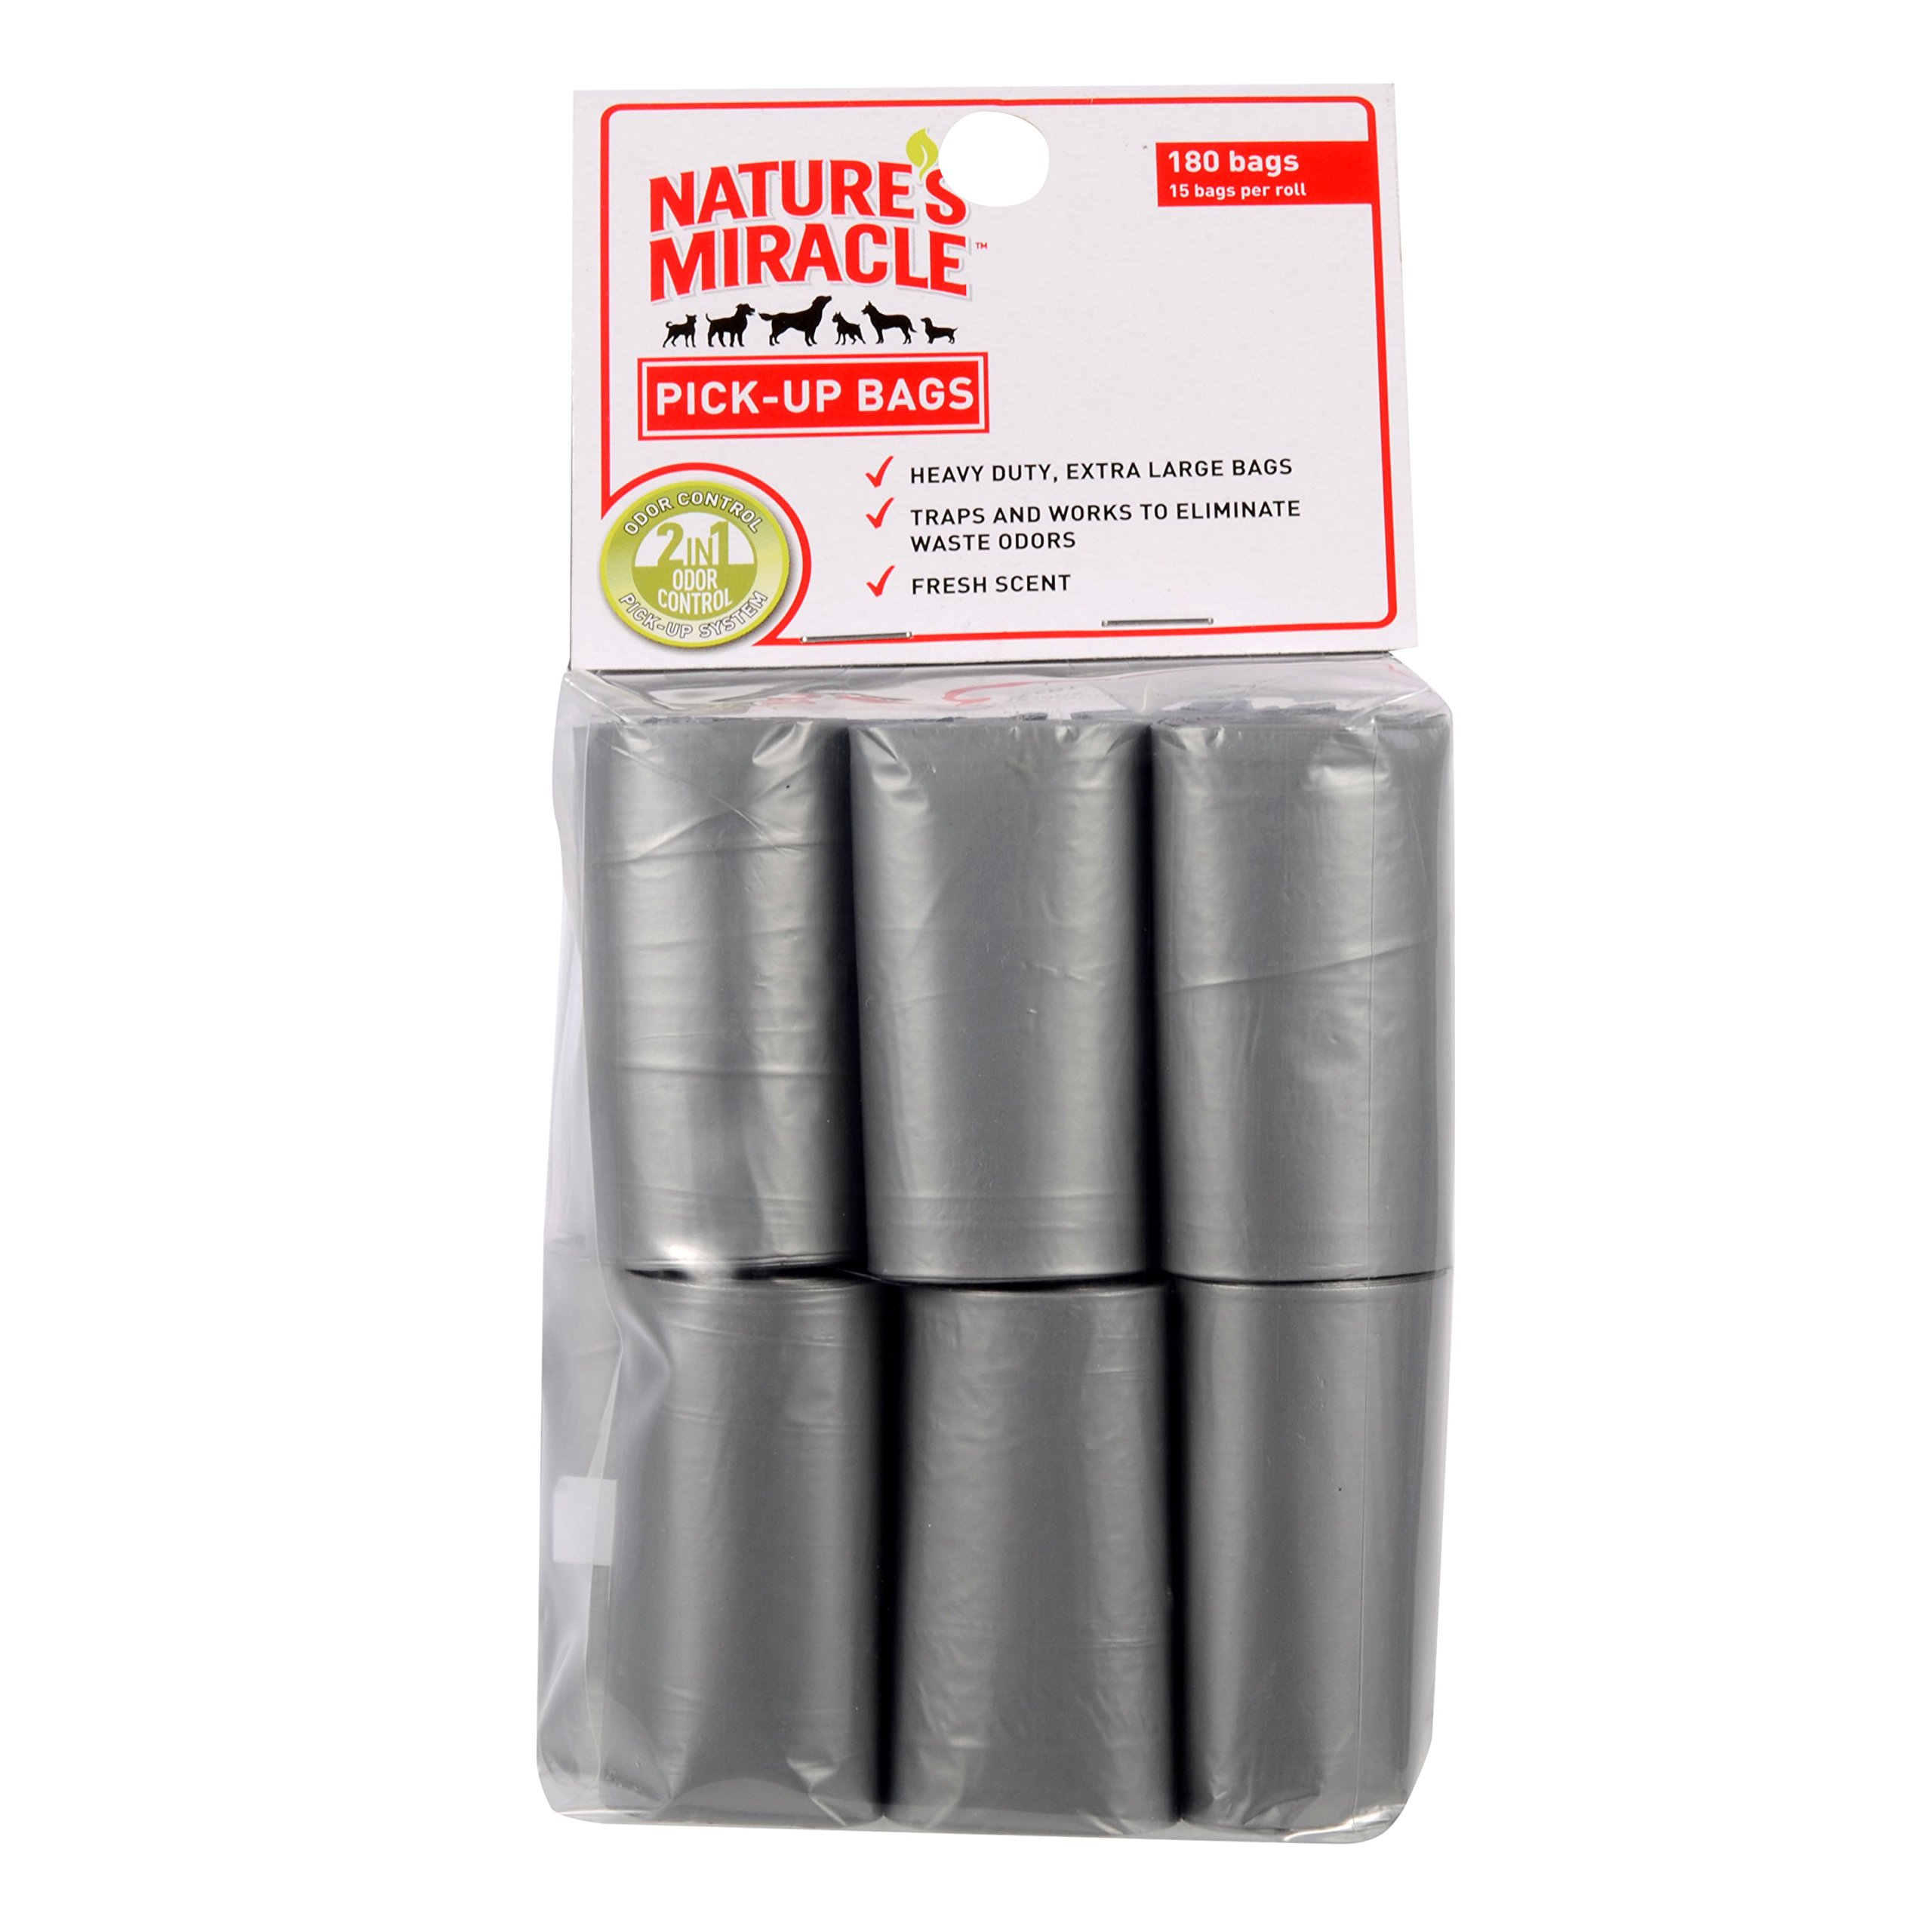 Nature's Miracle Pick-Up Bags, 12 Rolls, 180 Bags (P-6006)